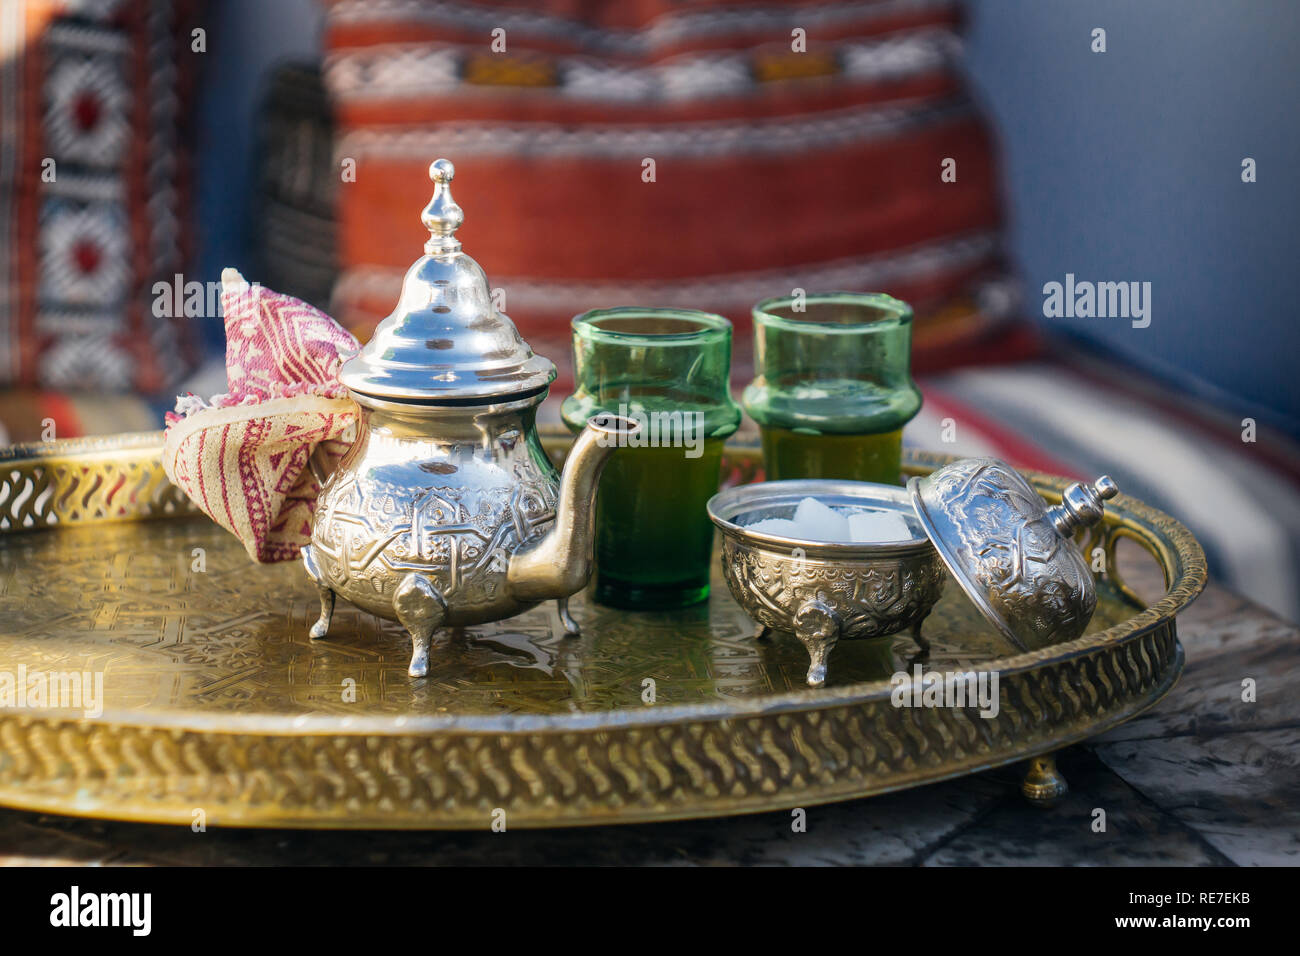 Arabian Mint Tea (Moroccan Mint Tea) The national hot drink in the Middle East and the Muslim world. Served in a special iron silver teapot with sugar - Stock Image